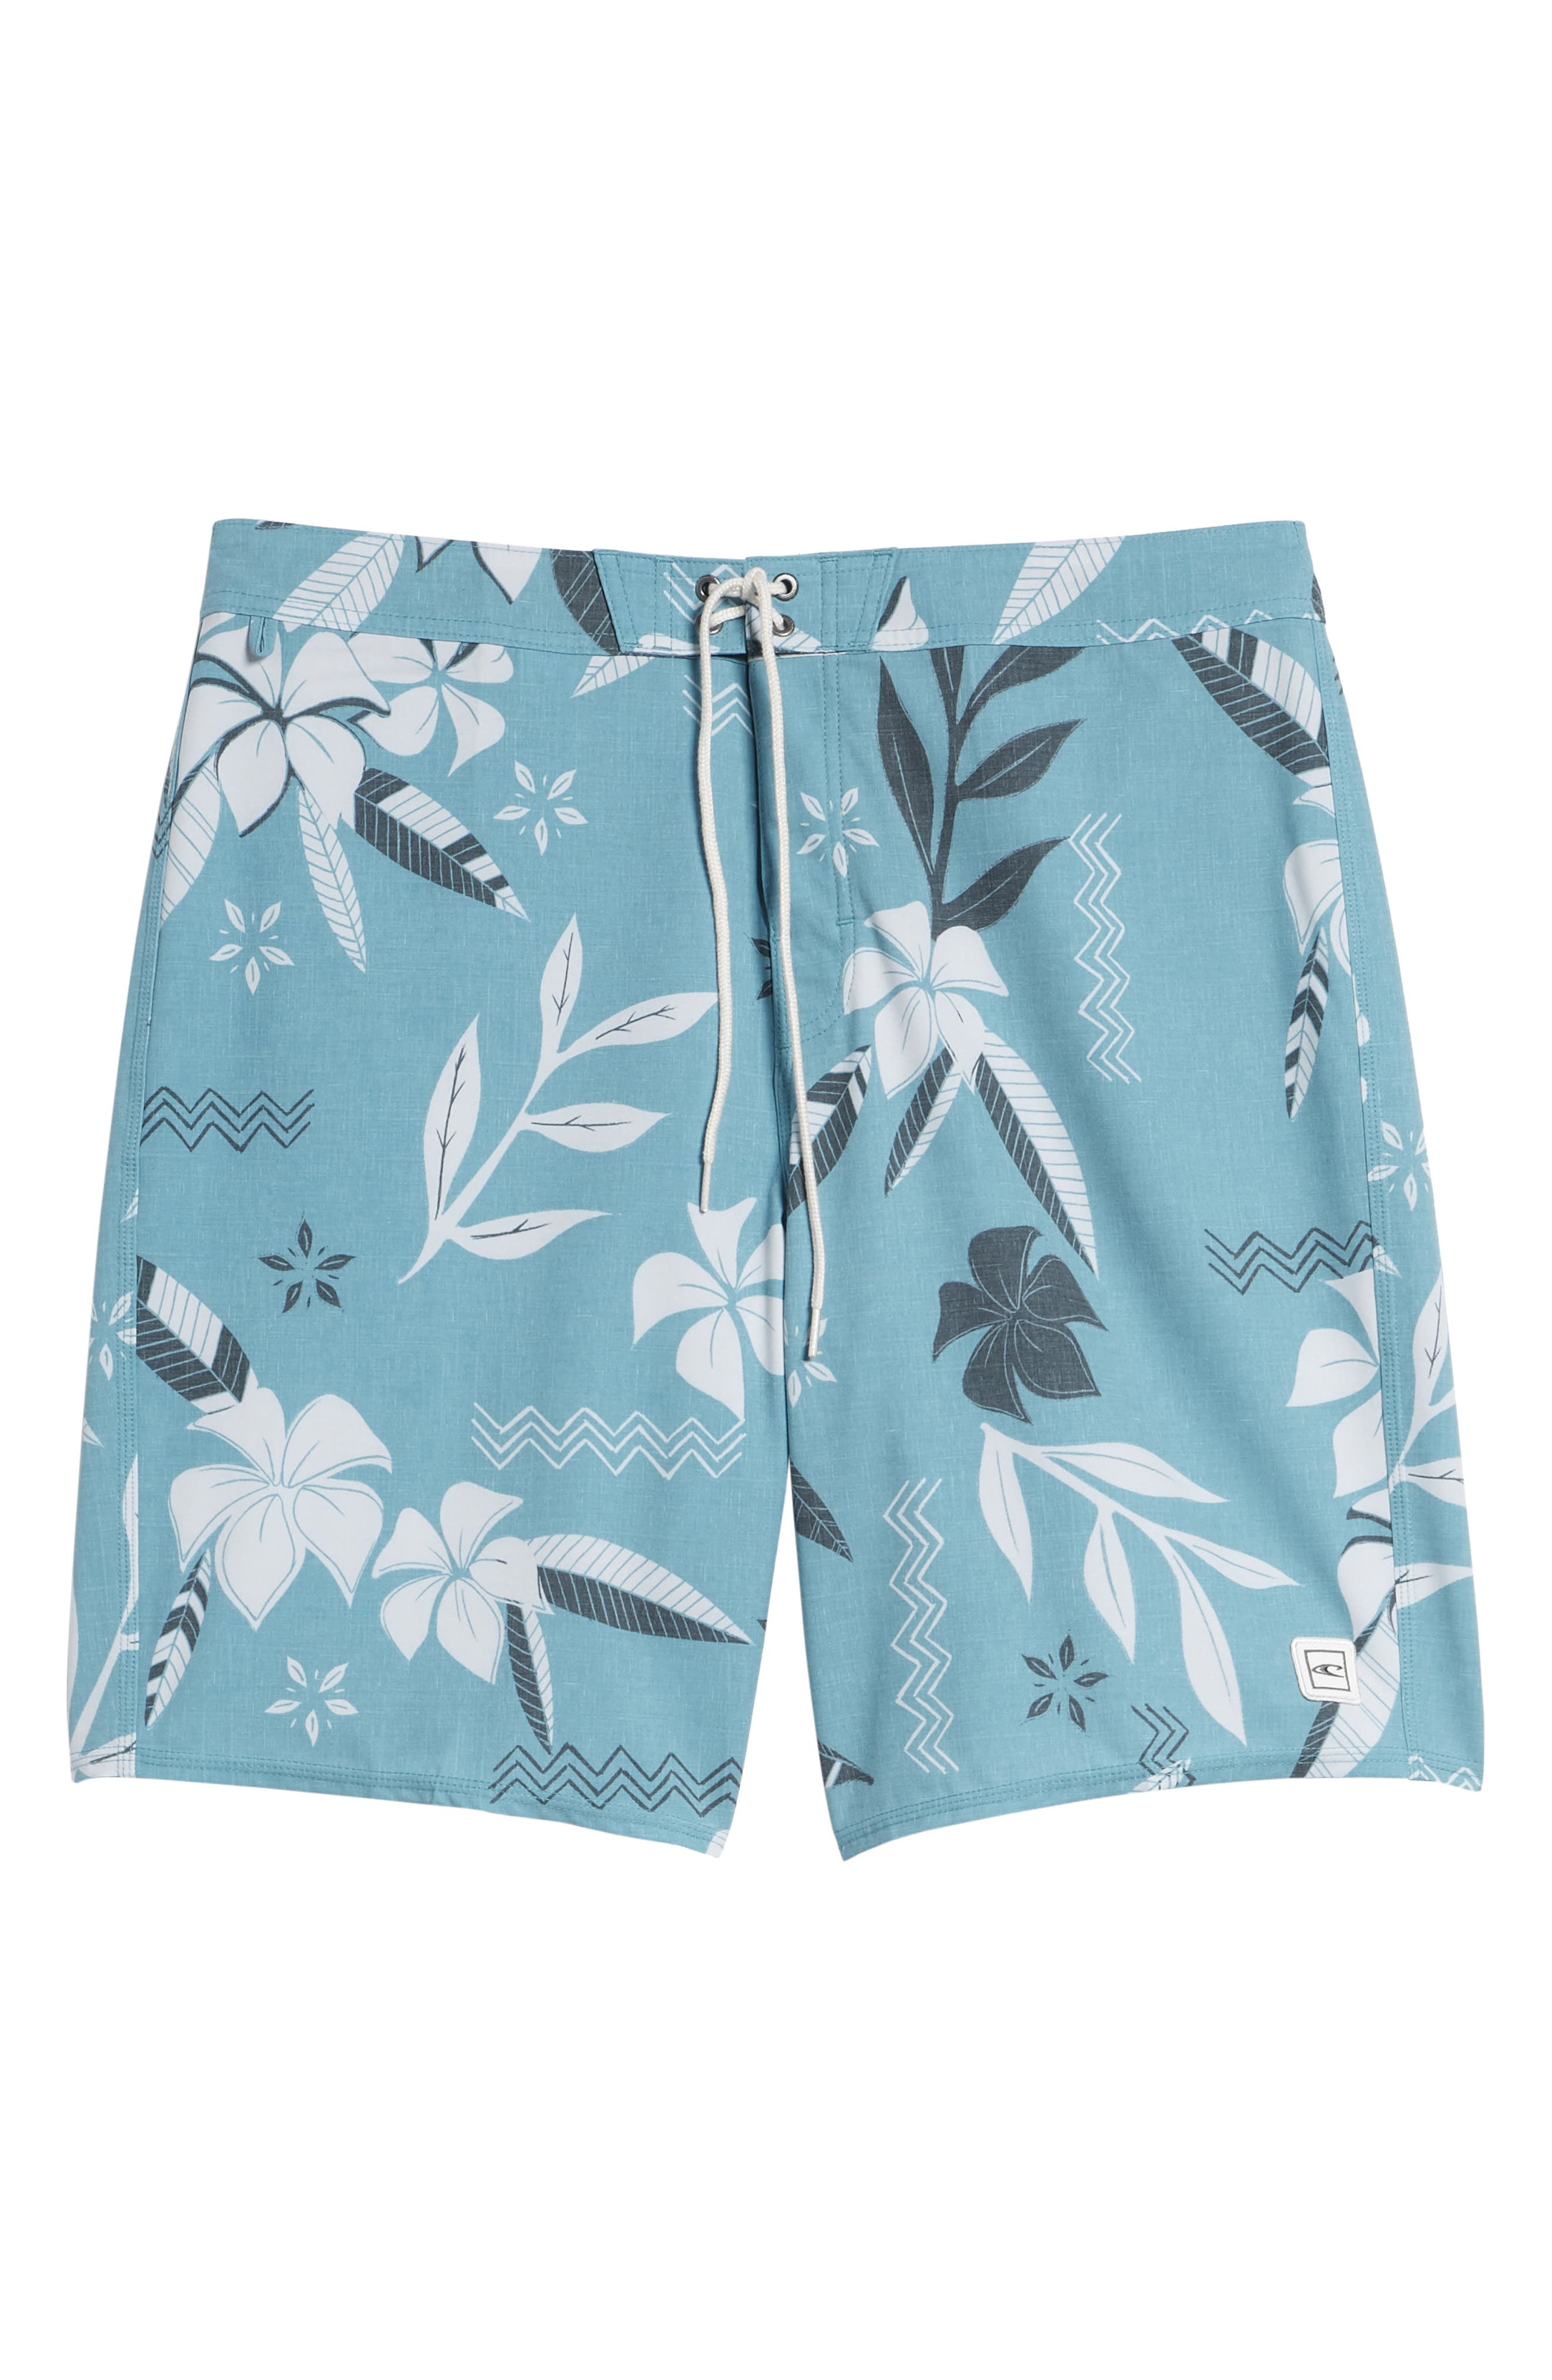 Maui Board Shorts,                             Alternate thumbnail 17, color,